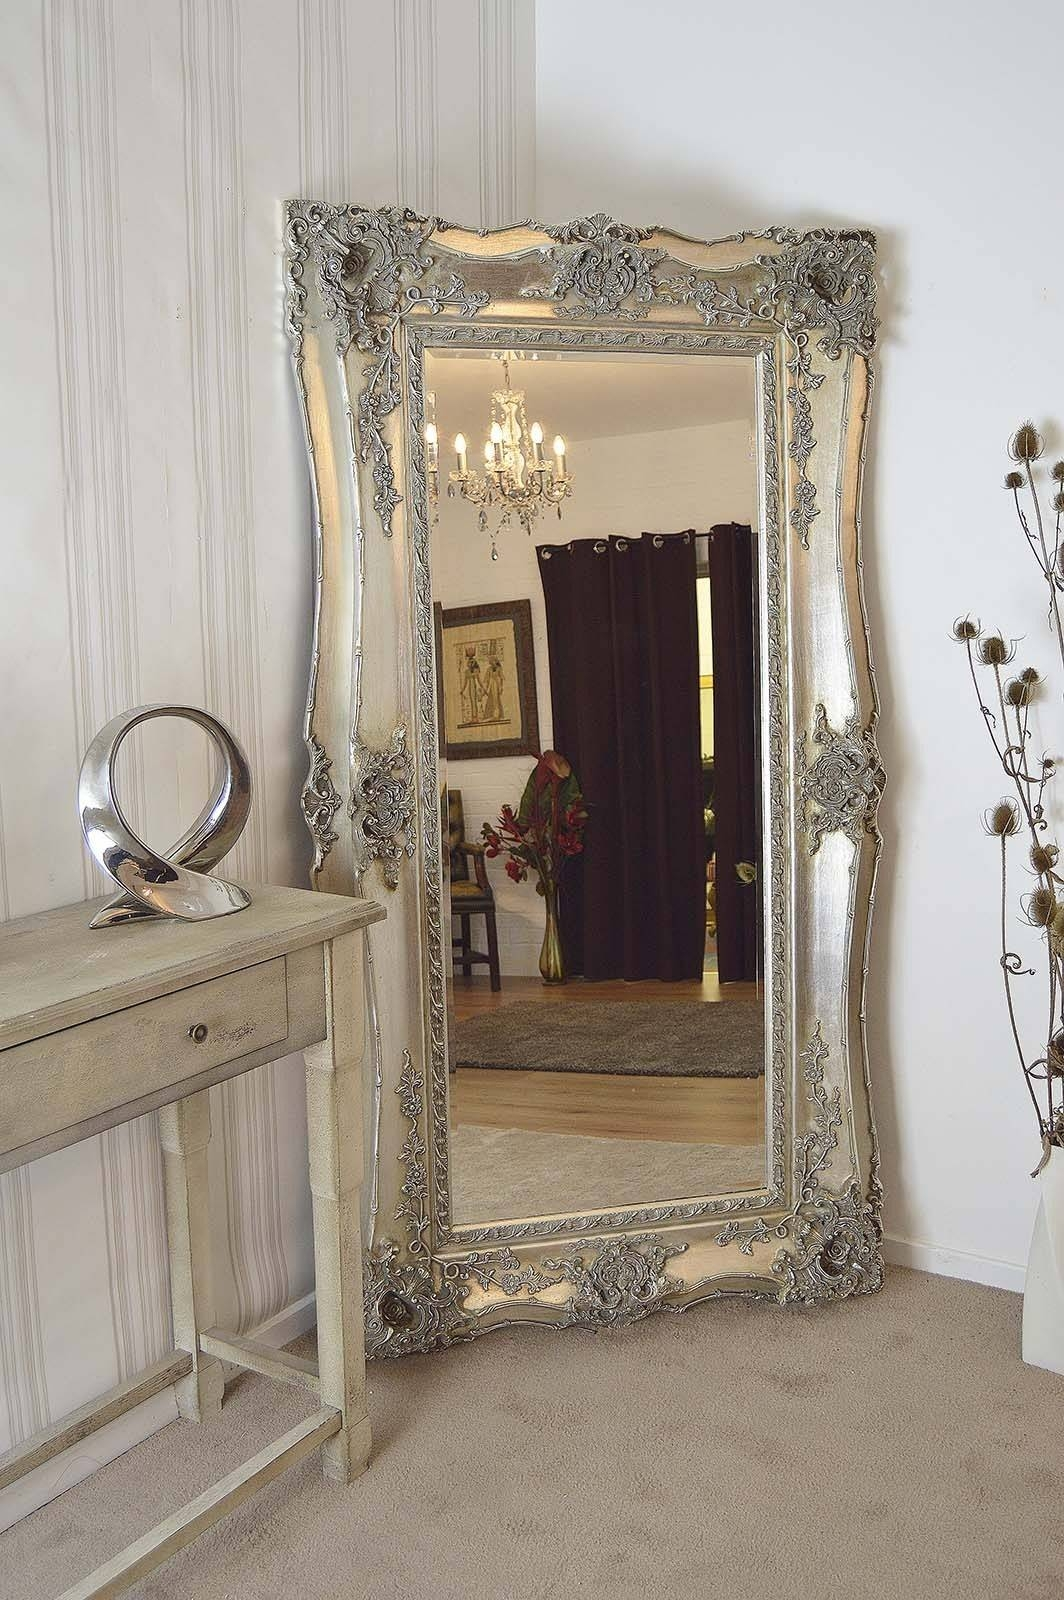 Large Antique Wall Mirror Ornate Frame Antique Ornate Wall Mirrors regarding Ivory Ornate Mirrors (Image 12 of 25)